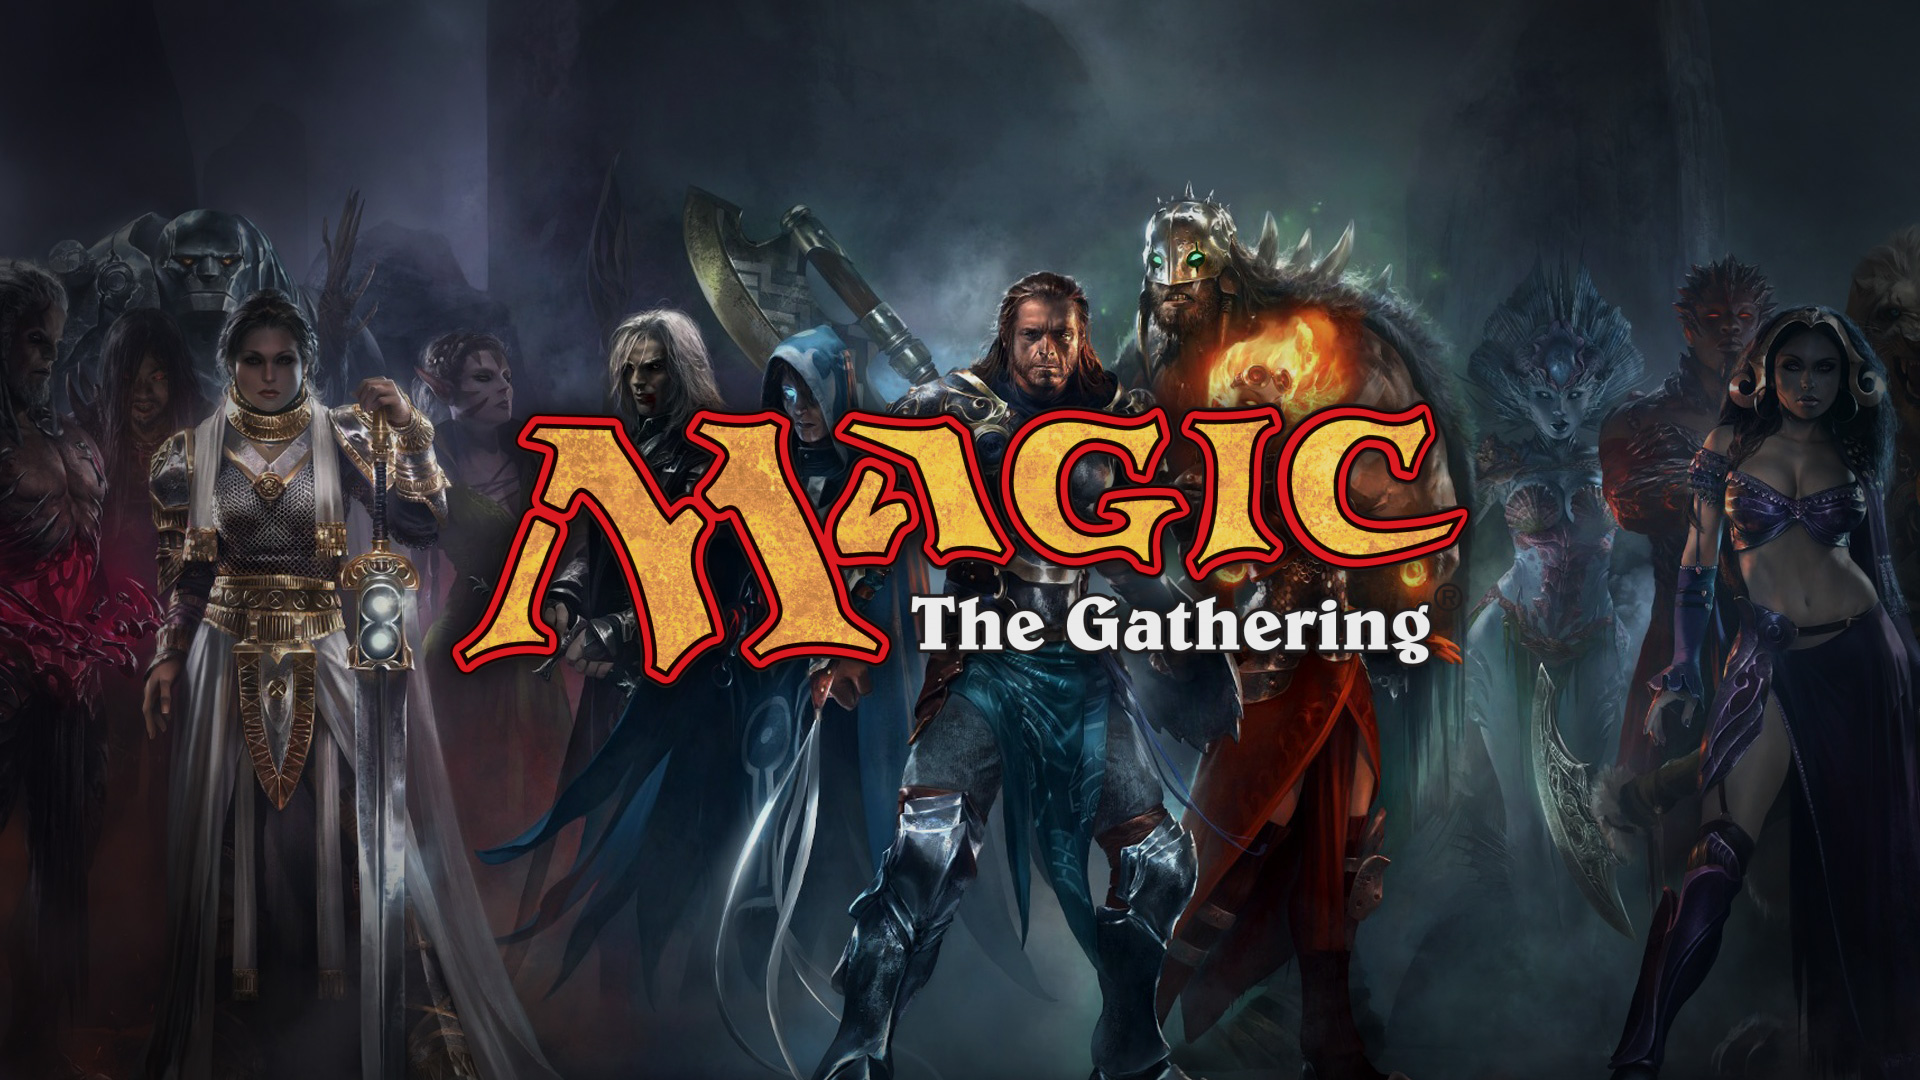 Magic The Gathering Wallpapers Game Hq Magic The Gathering